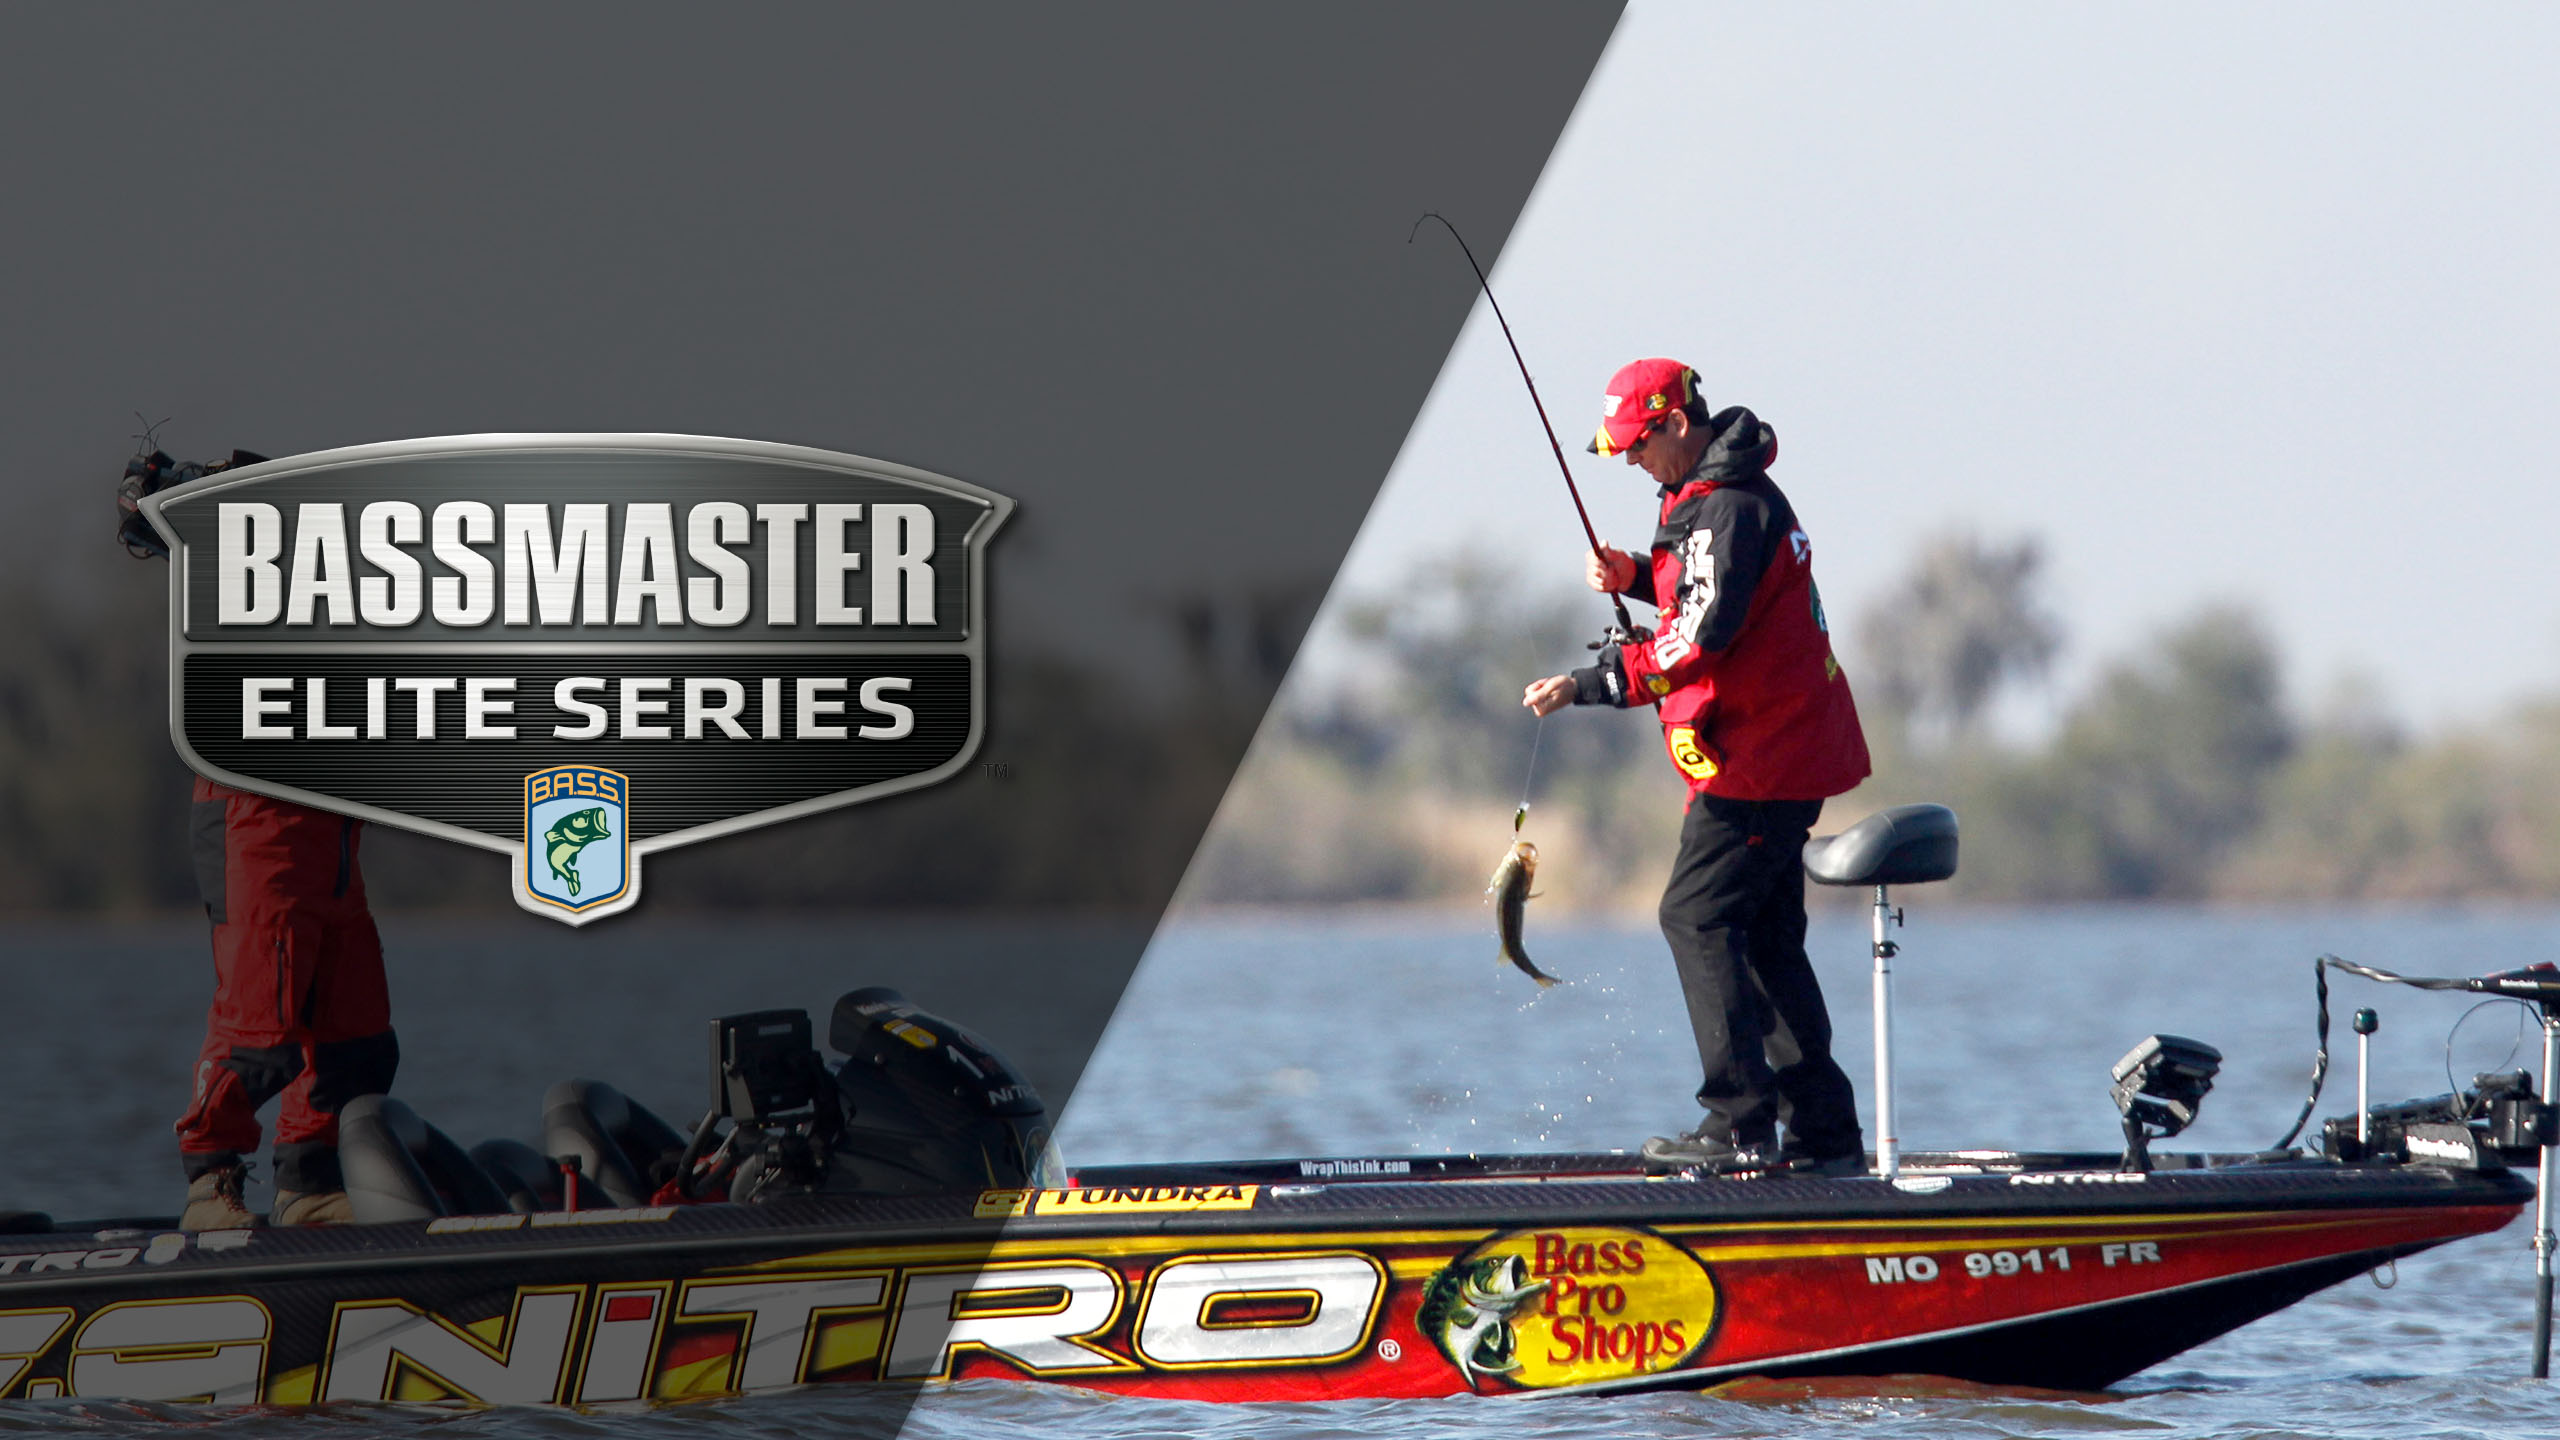 Bassmaster Elite Series at Lake Hartwell